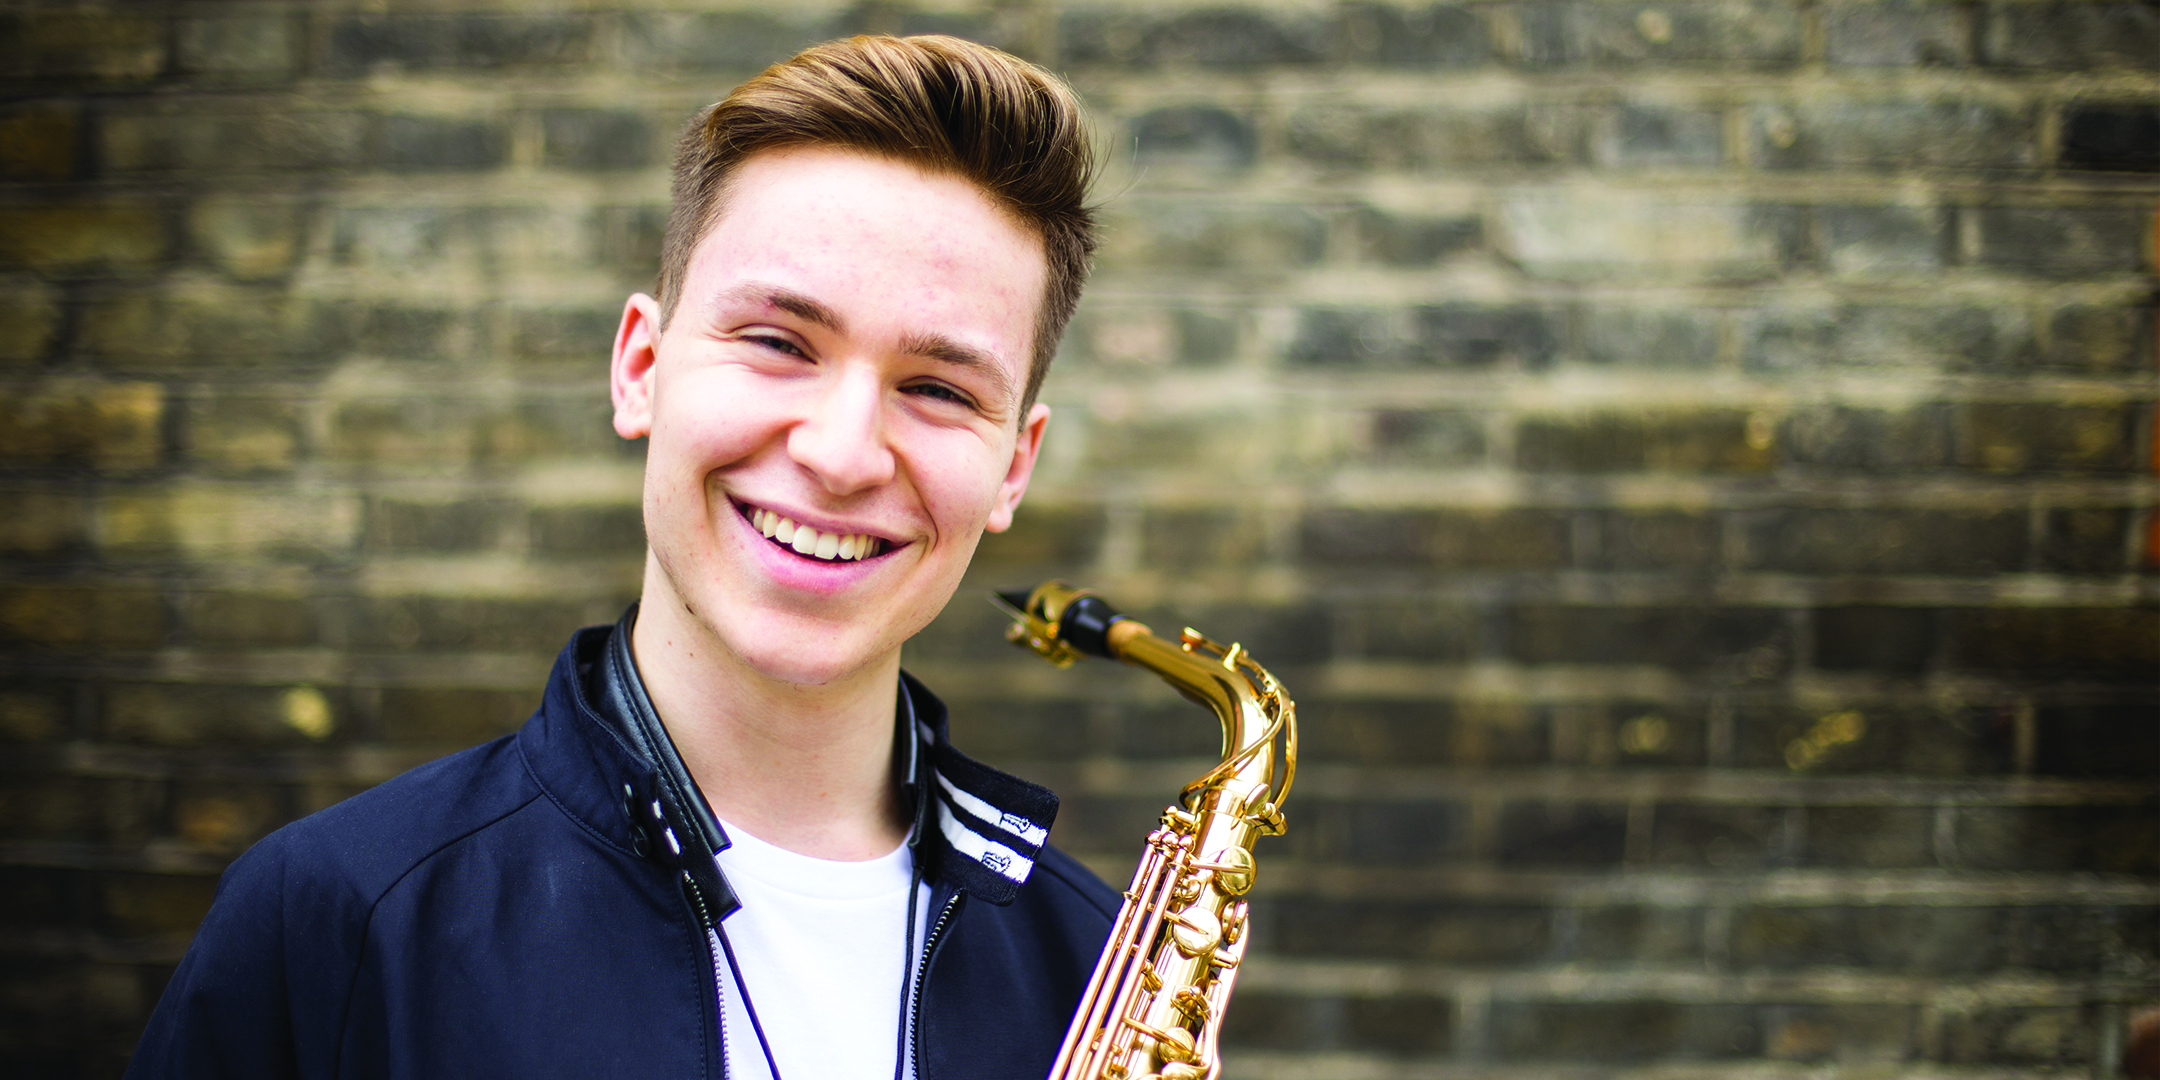 BBC Young Musician Finalist – Robert Burton – March 28th